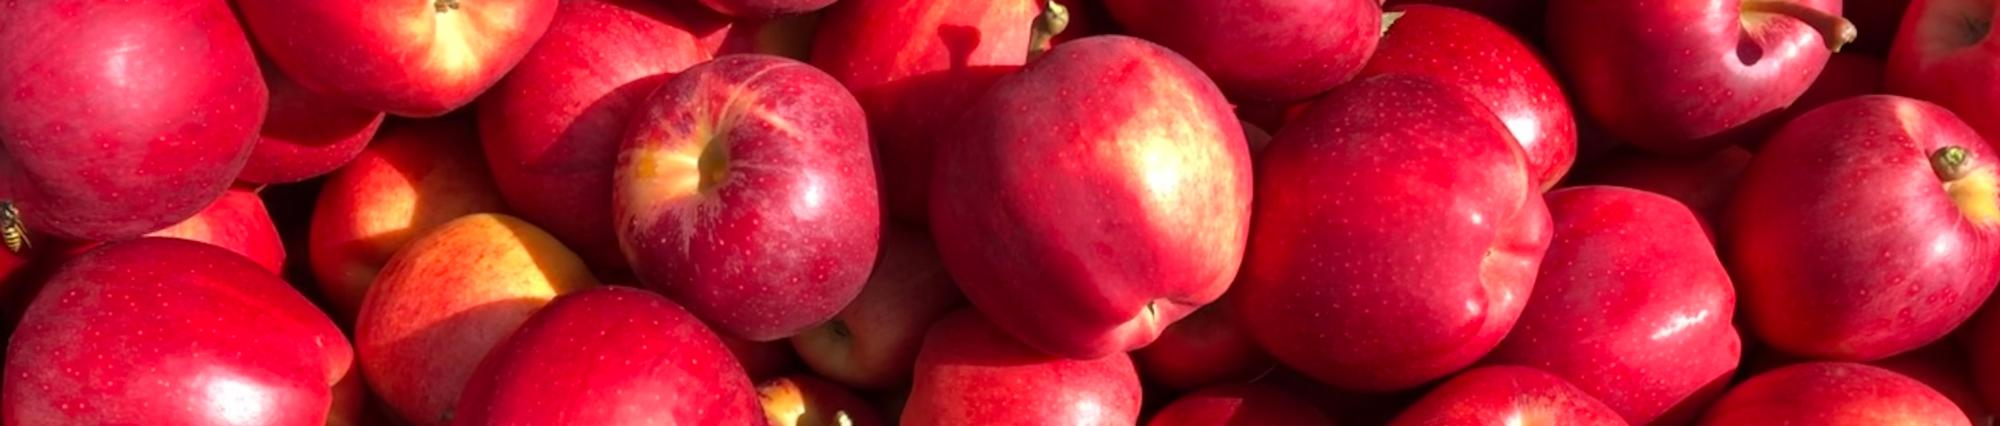 Image of apples.